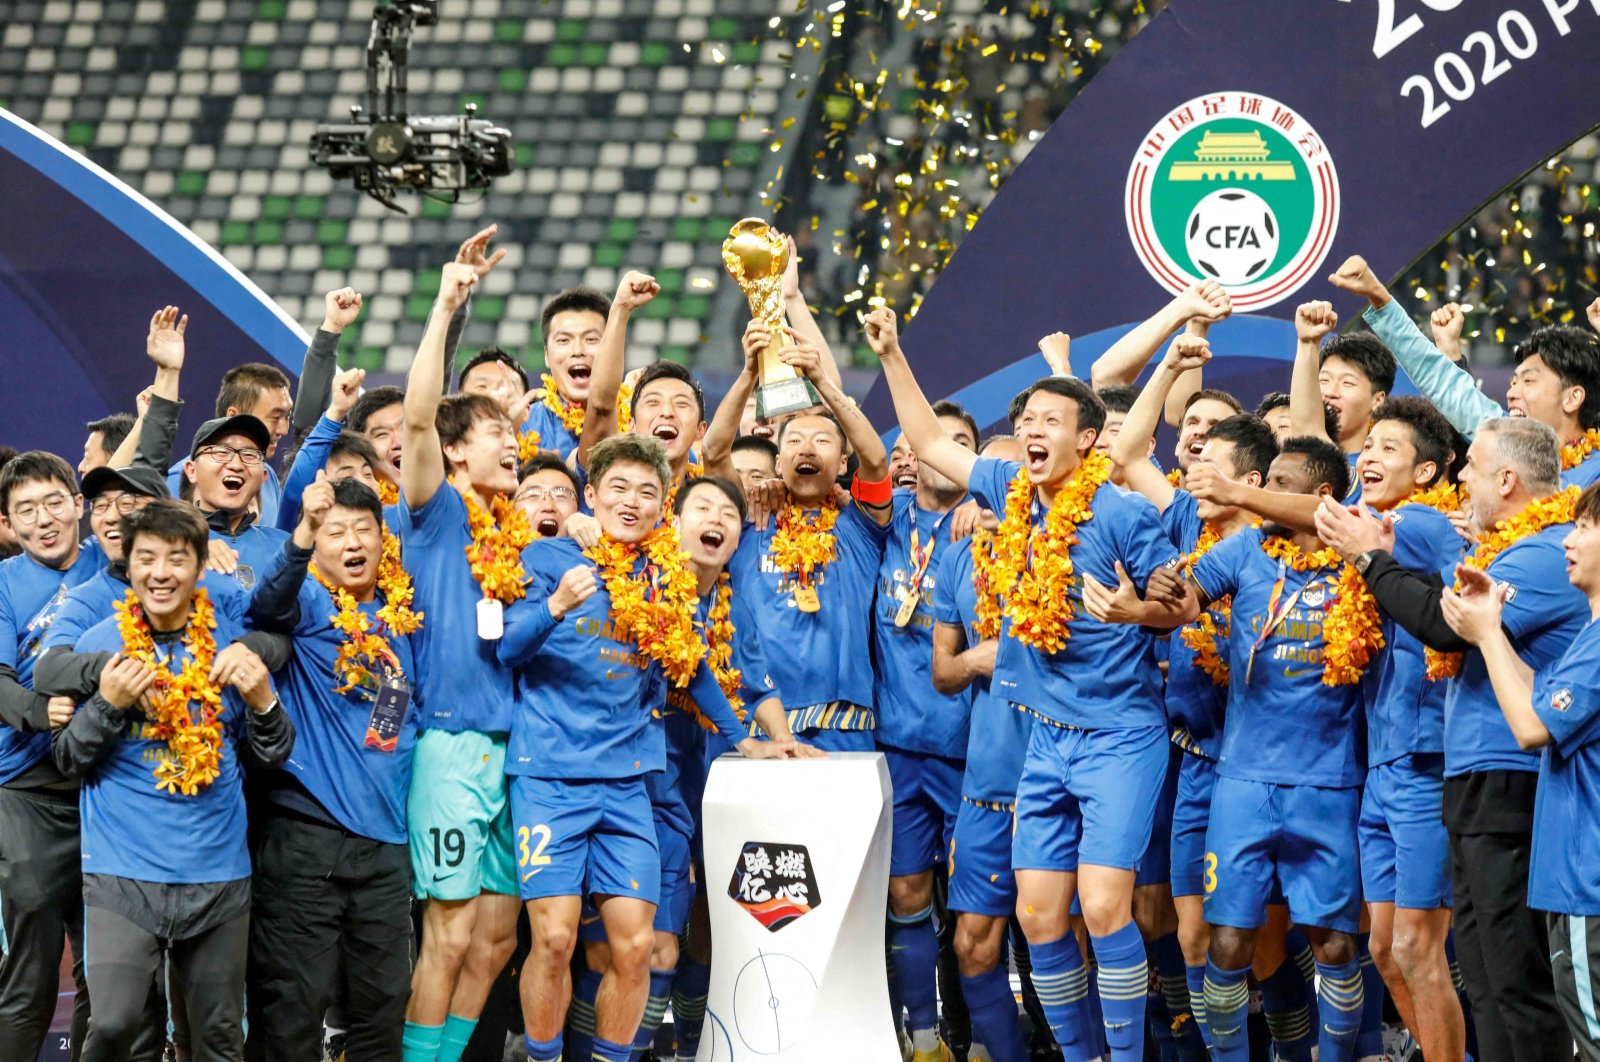 Jiangsu Suning players and staff members celebrate winning the Chinese Super League (CSL) title in Suzhou, eastern China, Nov. 12, 2020.(AFP Photo)